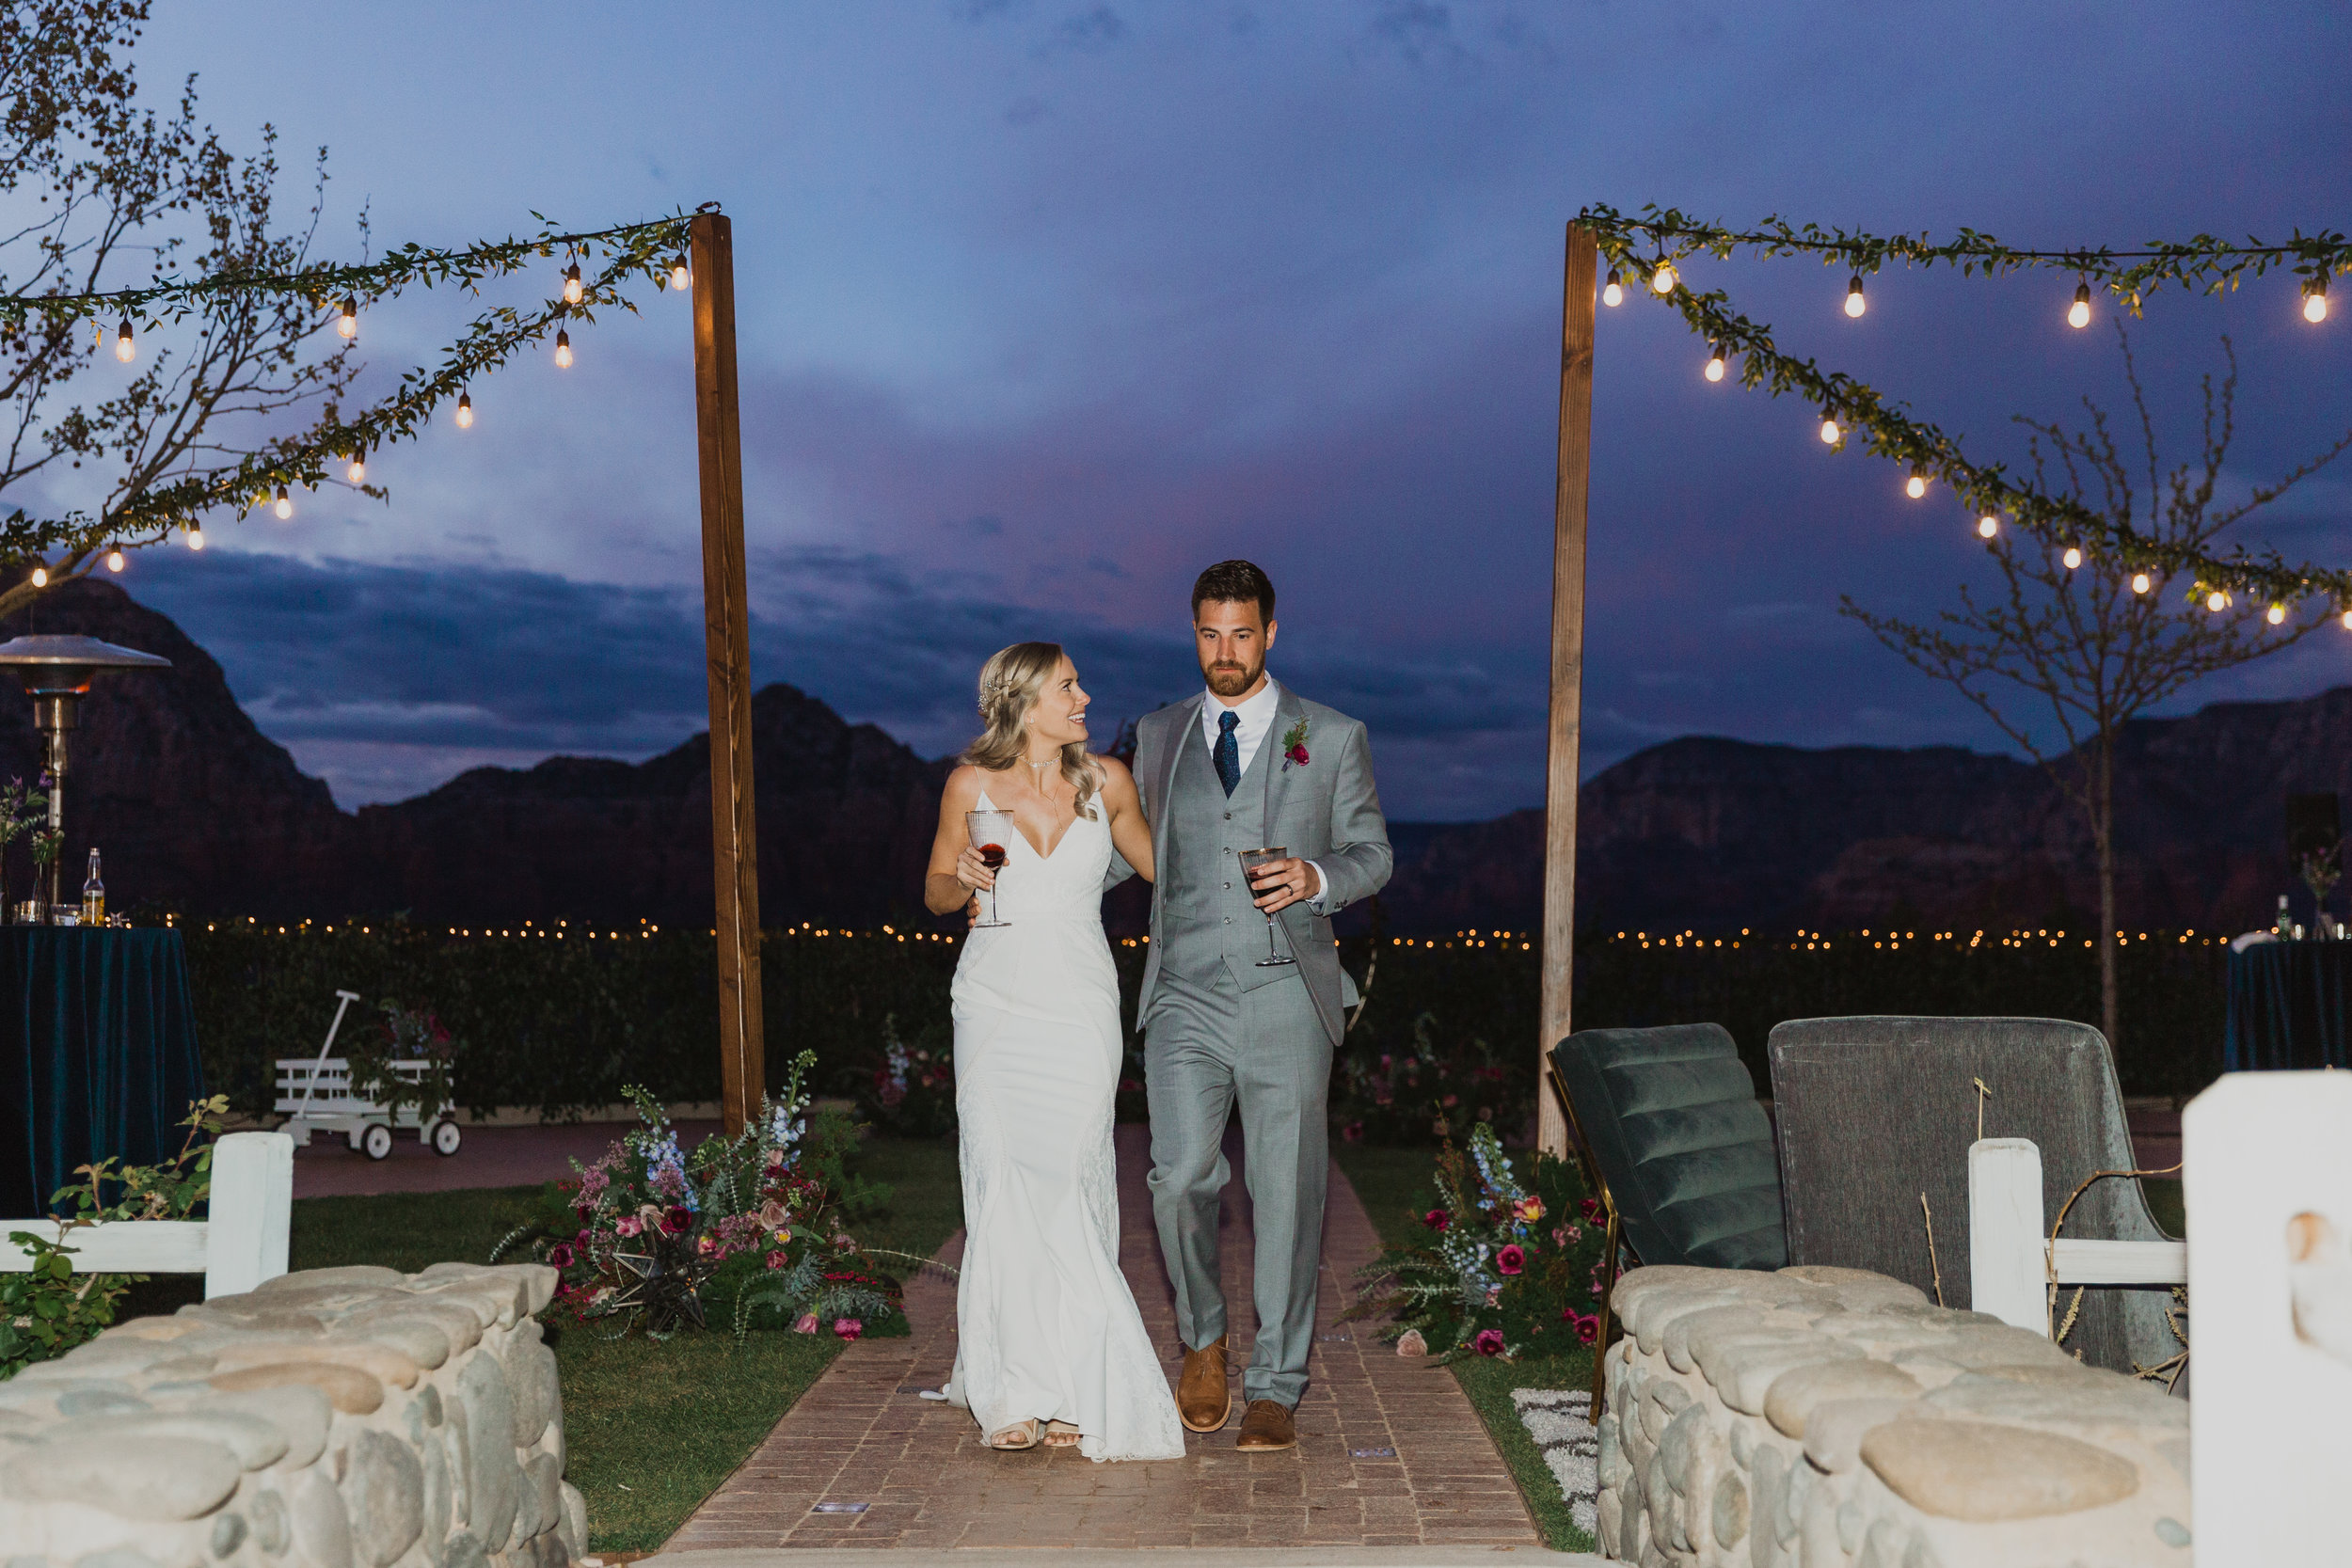 Stars and Moon Inspired Wedding in the Red Rocks of Sedona - Arizona Florist serving Phoenix scottsdale Mesa chandler Flagstaff Prescott - Bride and Groom Exit